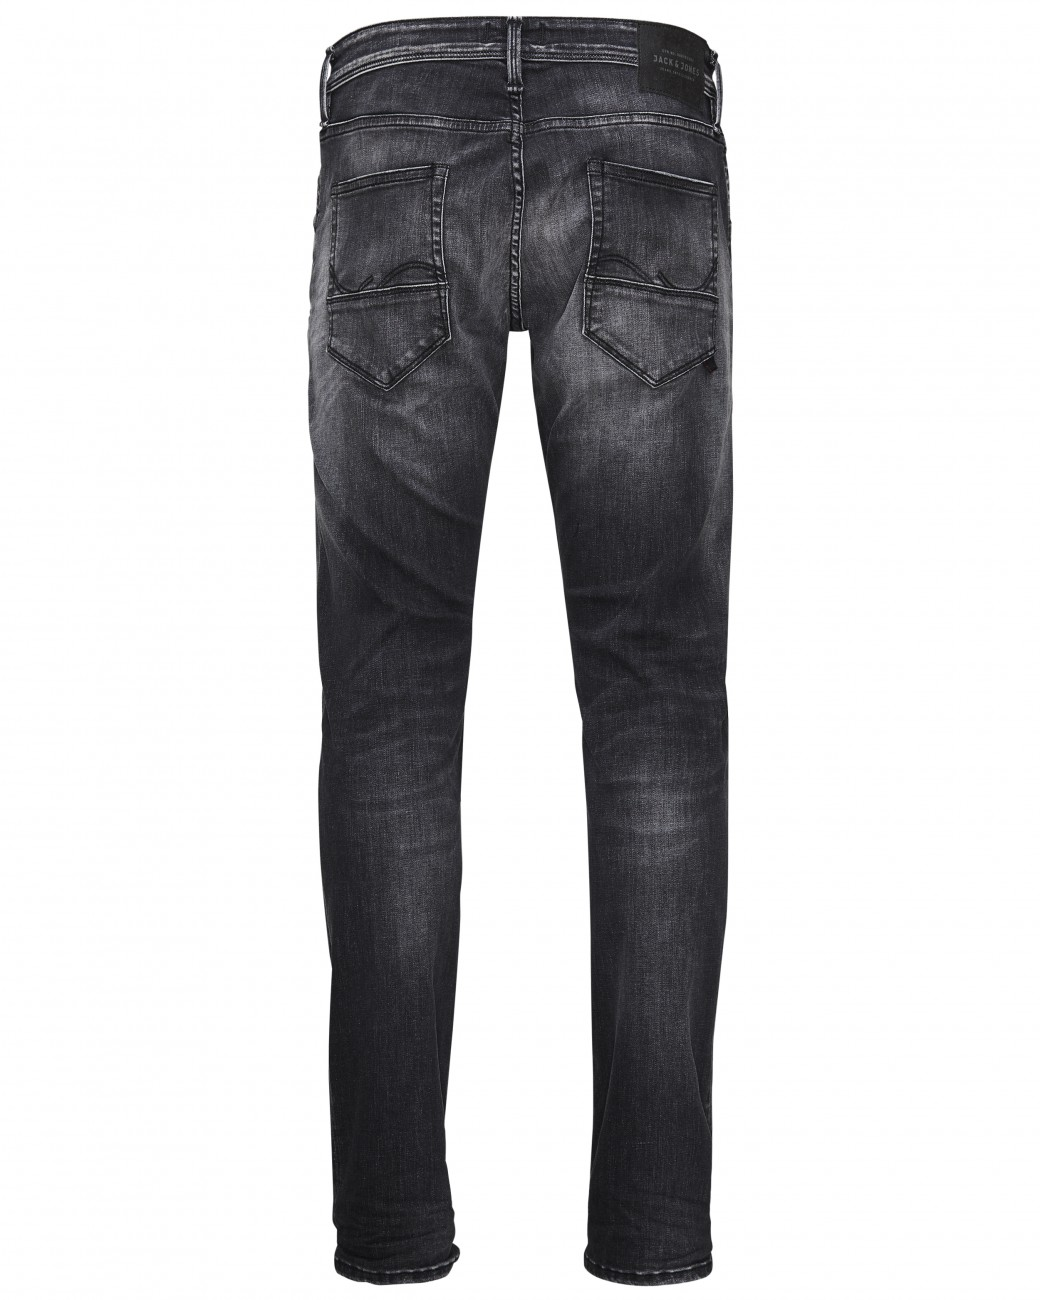 jack-jones-herren-jeans-jjiglenn-jjfox-bl-655-50sps-slim-fit-schwarz-black-denim